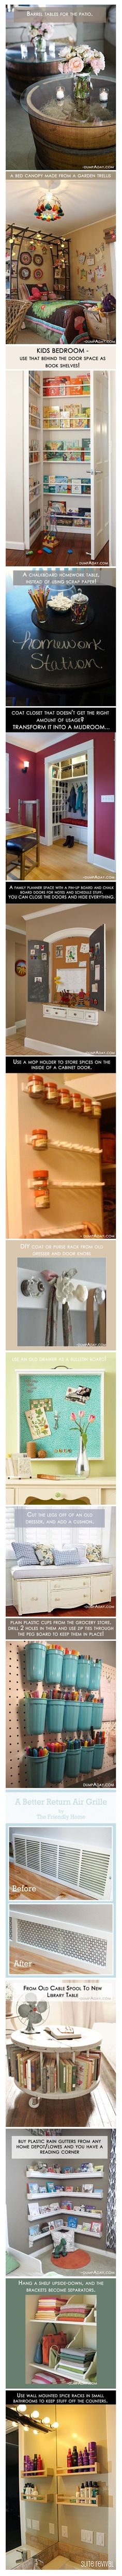 16 Amazing Do It Yourself Home Ideas |